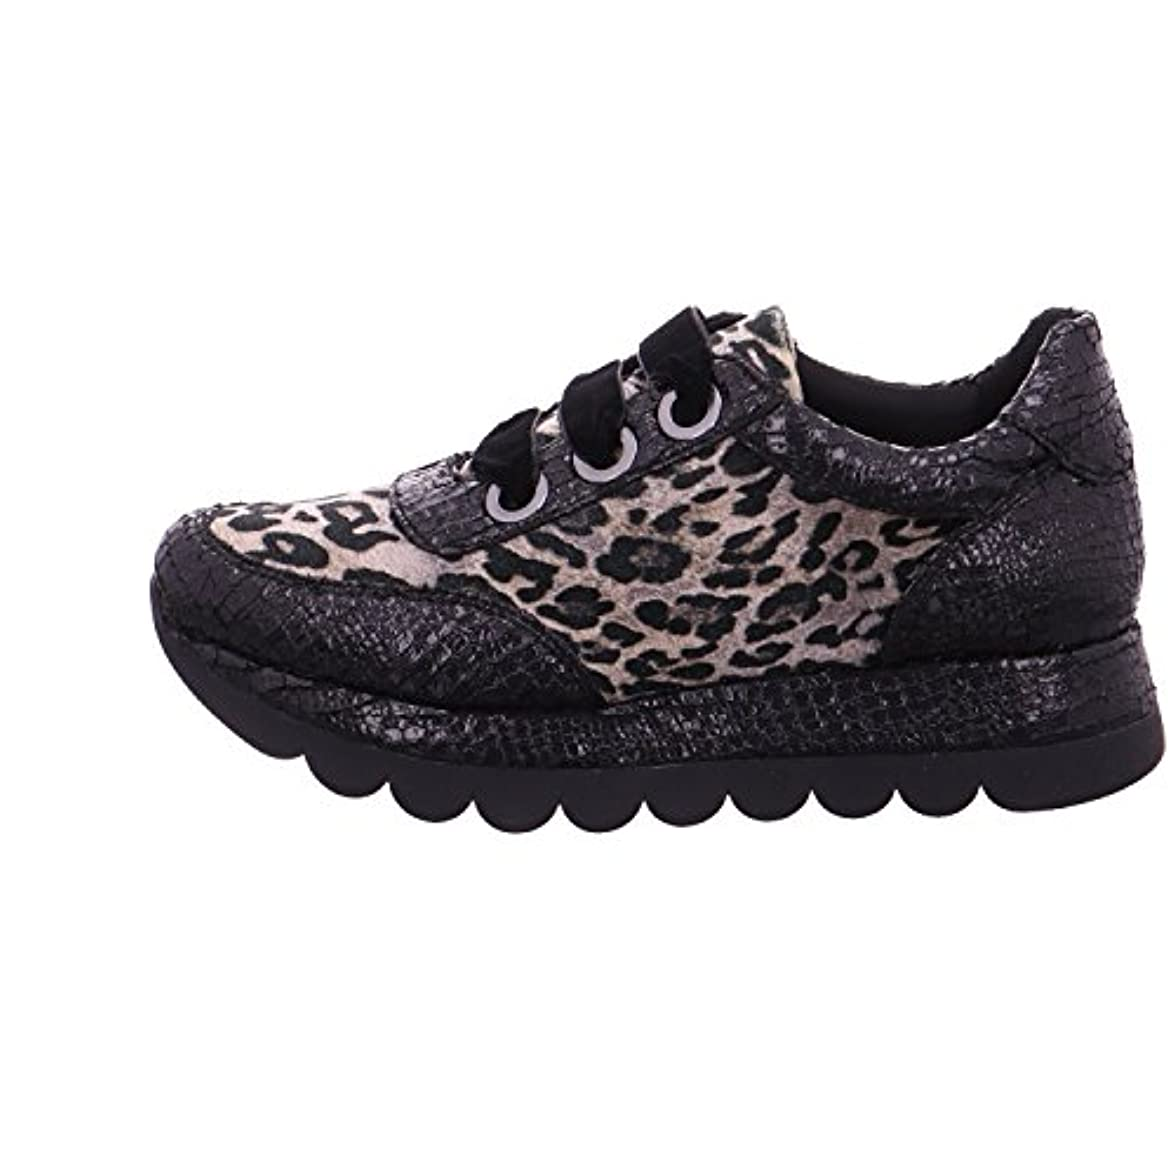 Cafe' Noir Sneakers Donna Maculato Db944 A i 2018-19 Cod jdb944